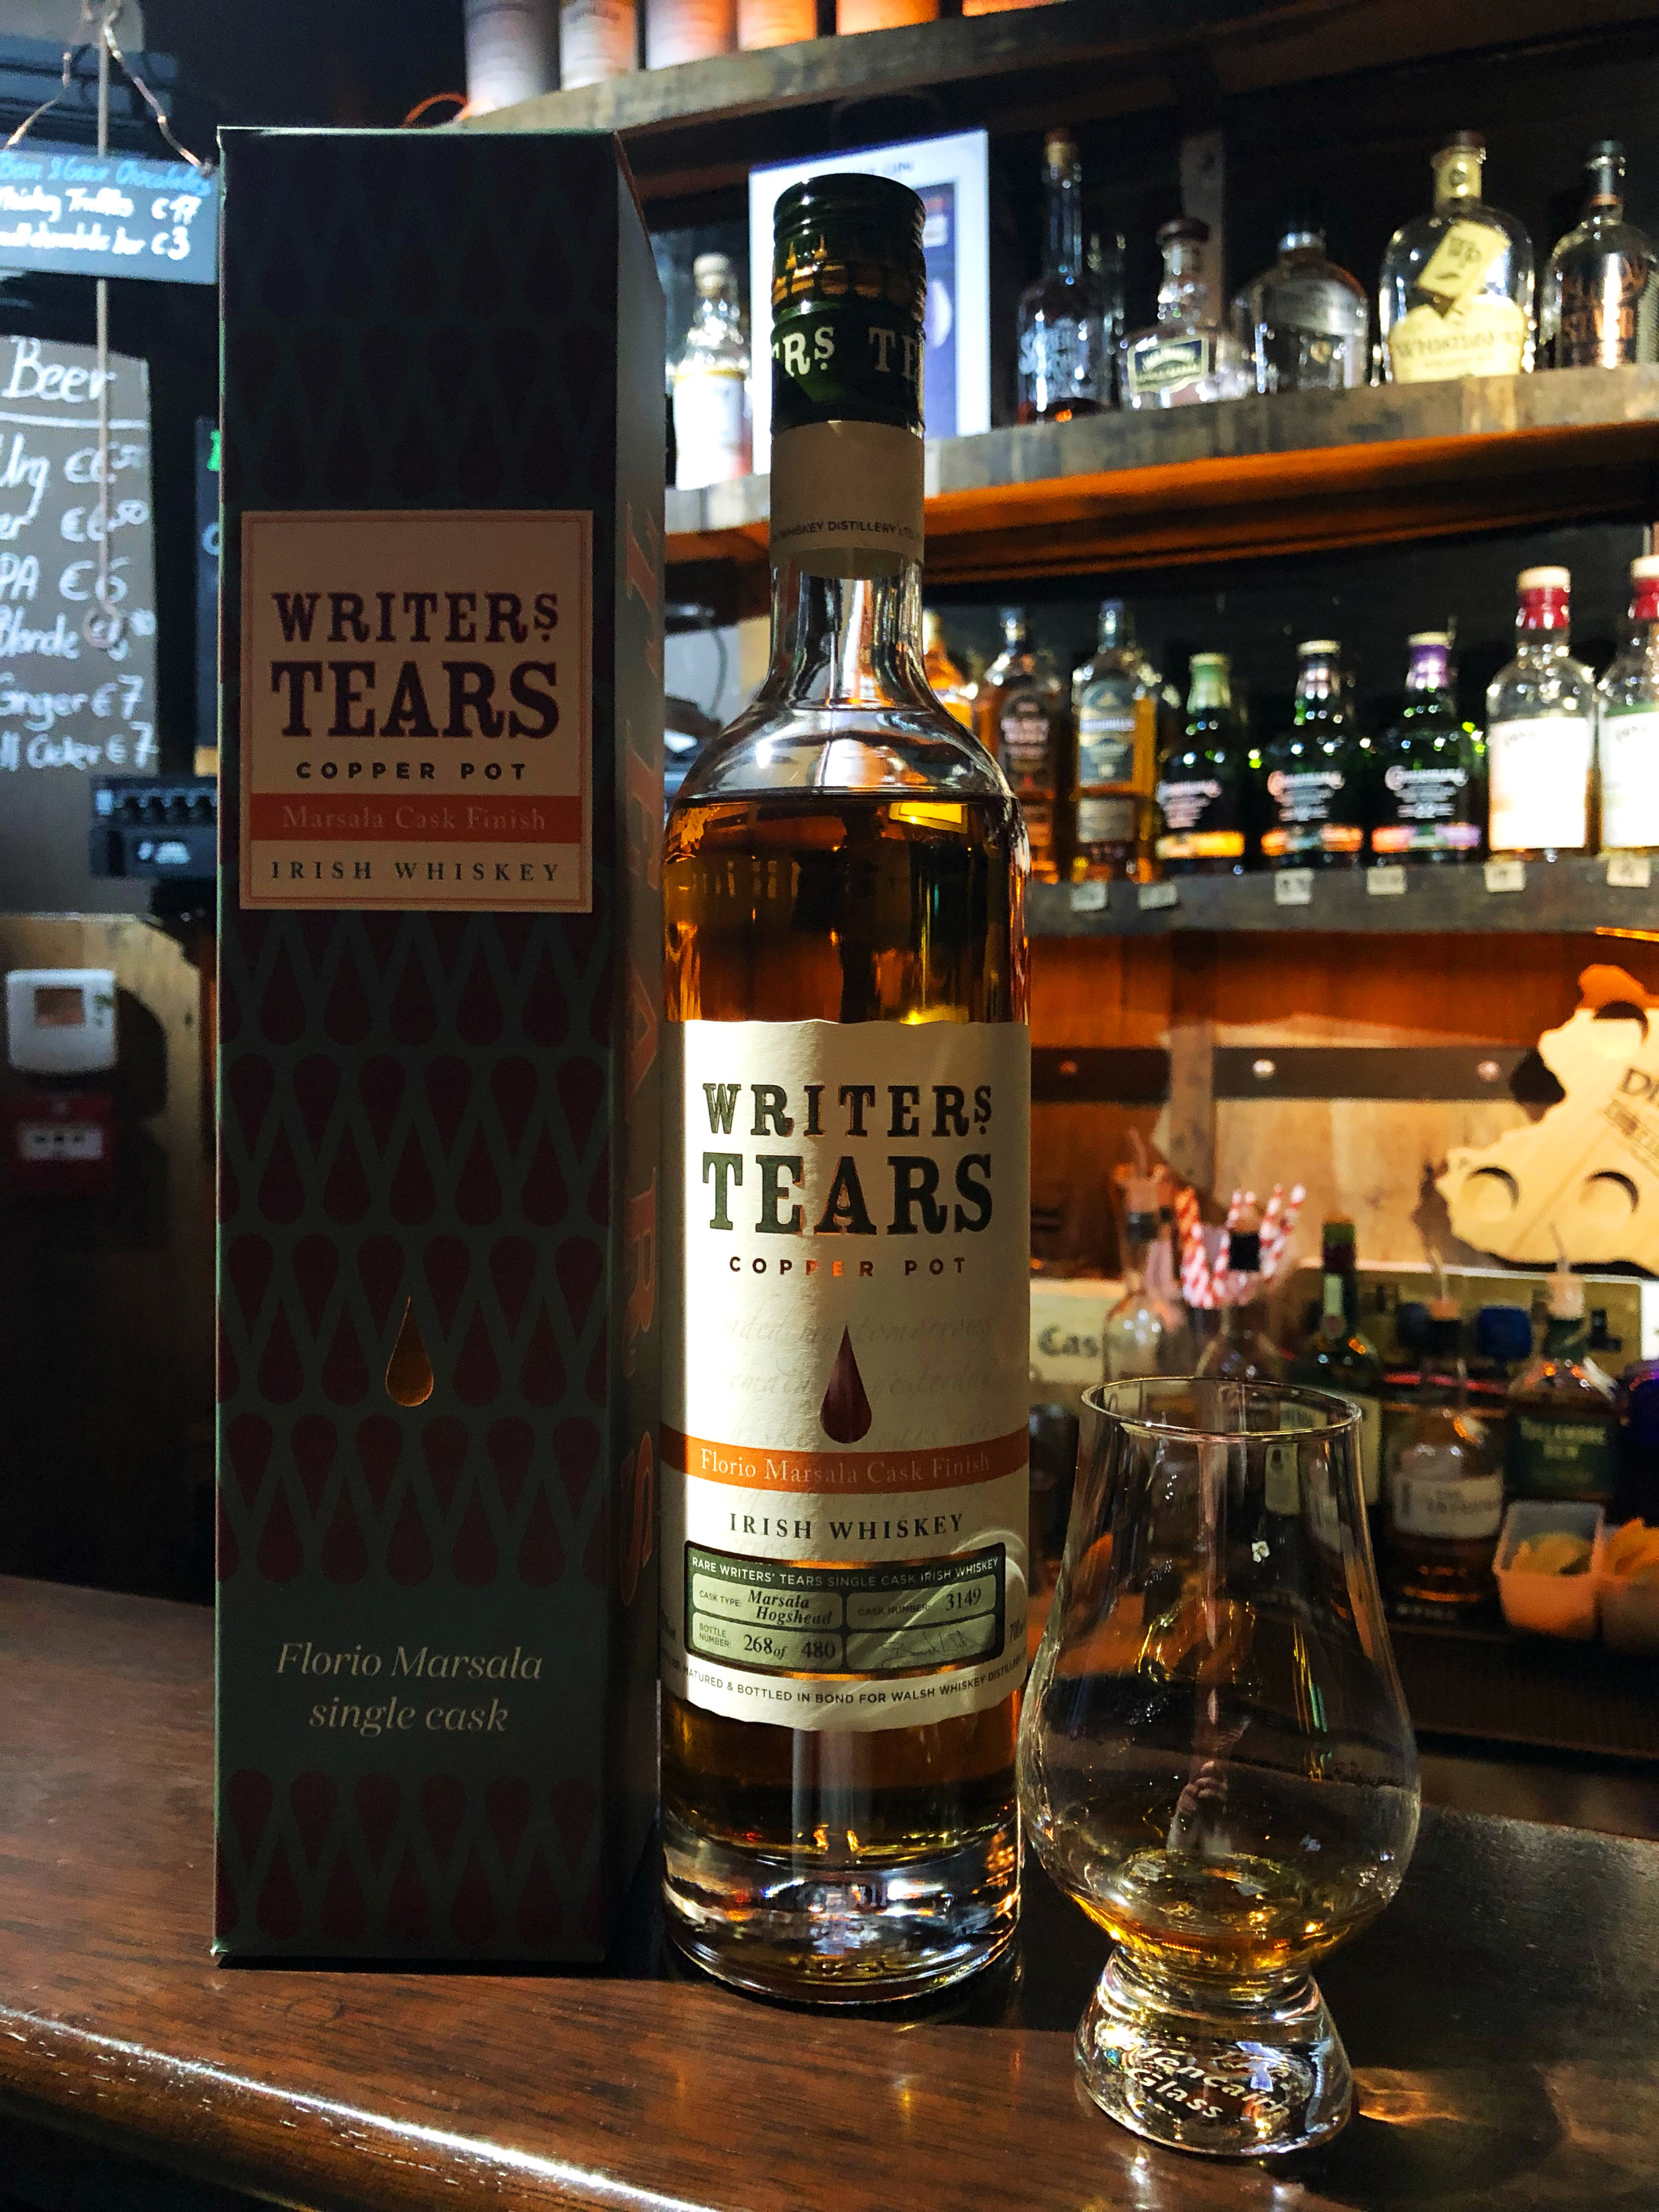 When we first opened it at Dingle Whiskey Bar in Dublin, Ireland.